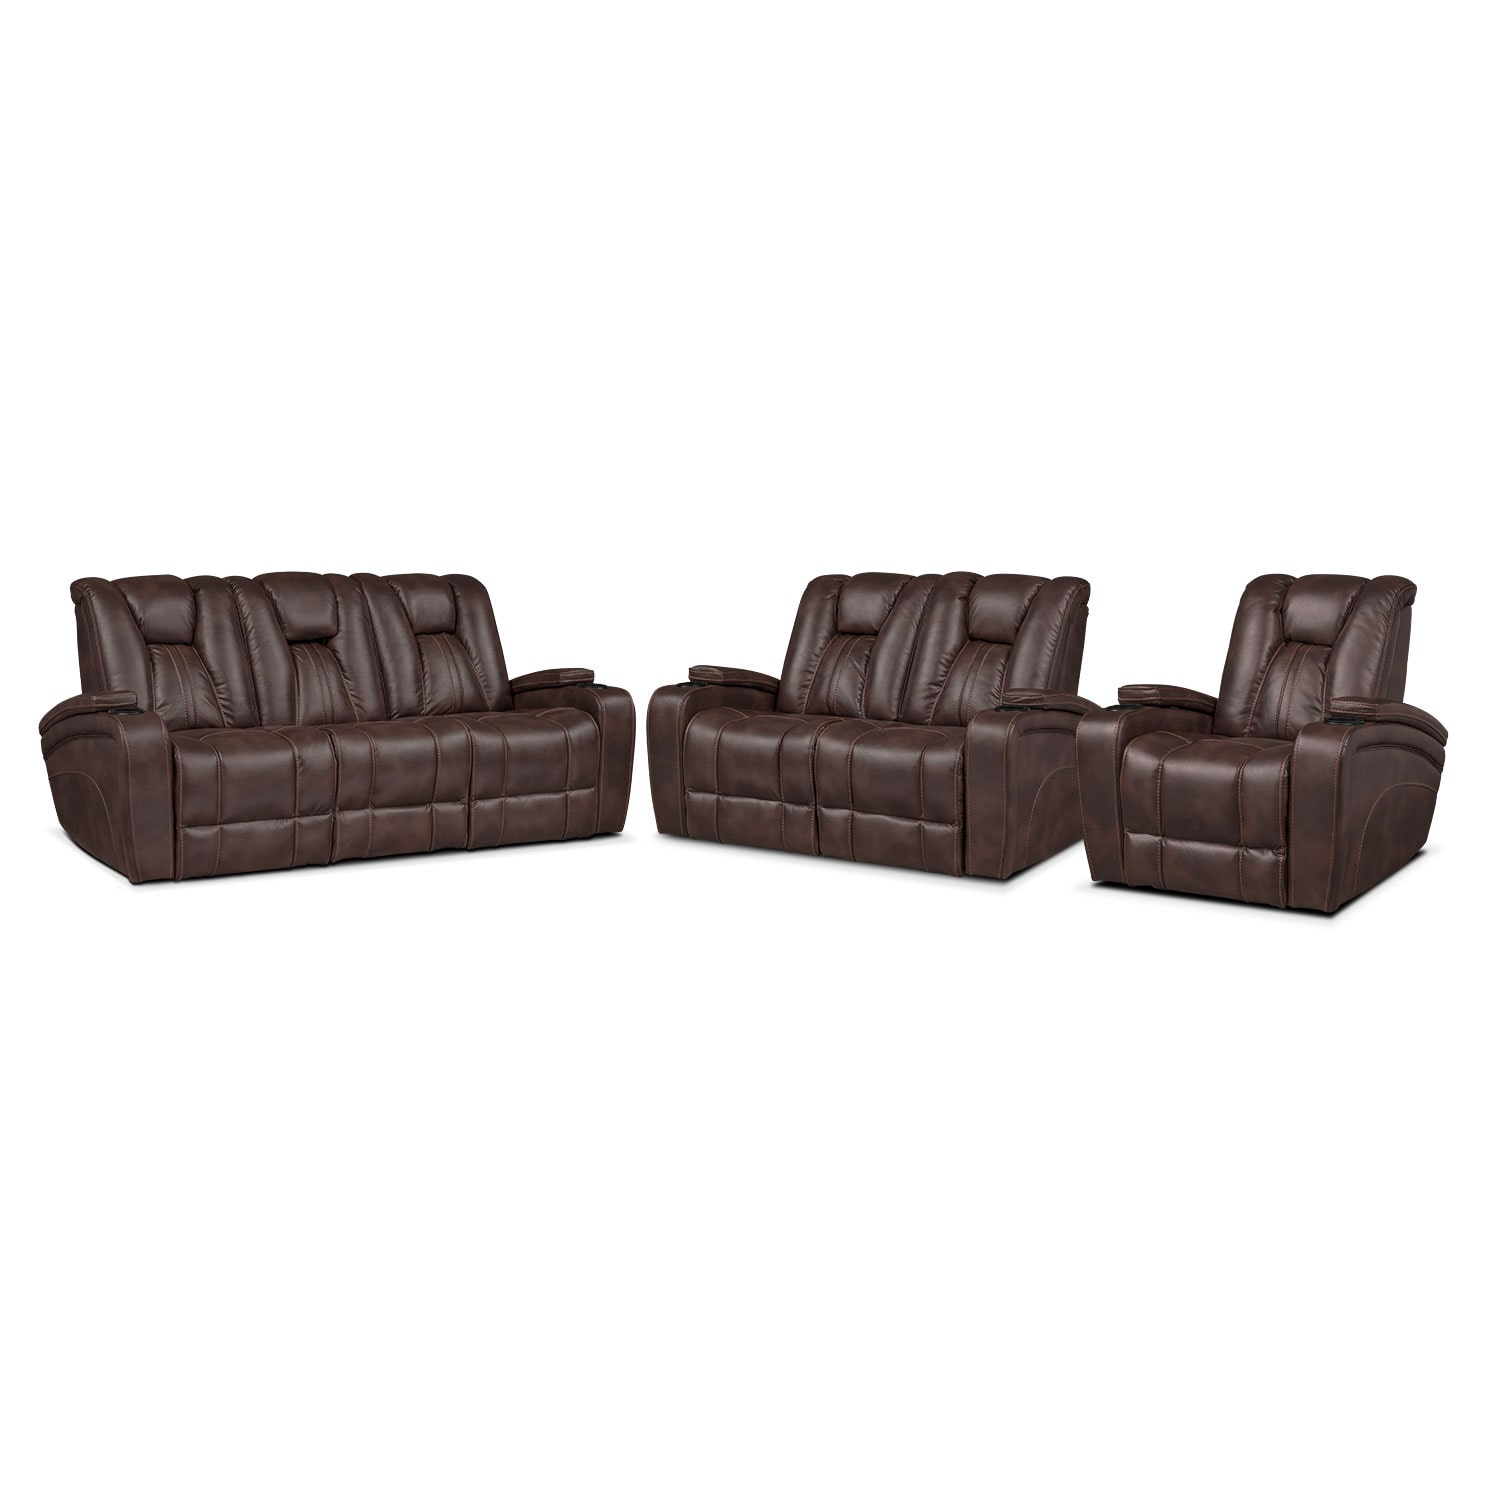 Pulsar Power Reclining Sofa Power Reclining Loveseat and Power Recliner Set - Brown by One80  sc 1 st  American Signature Furniture : nolan reclining sofa - islam-shia.org